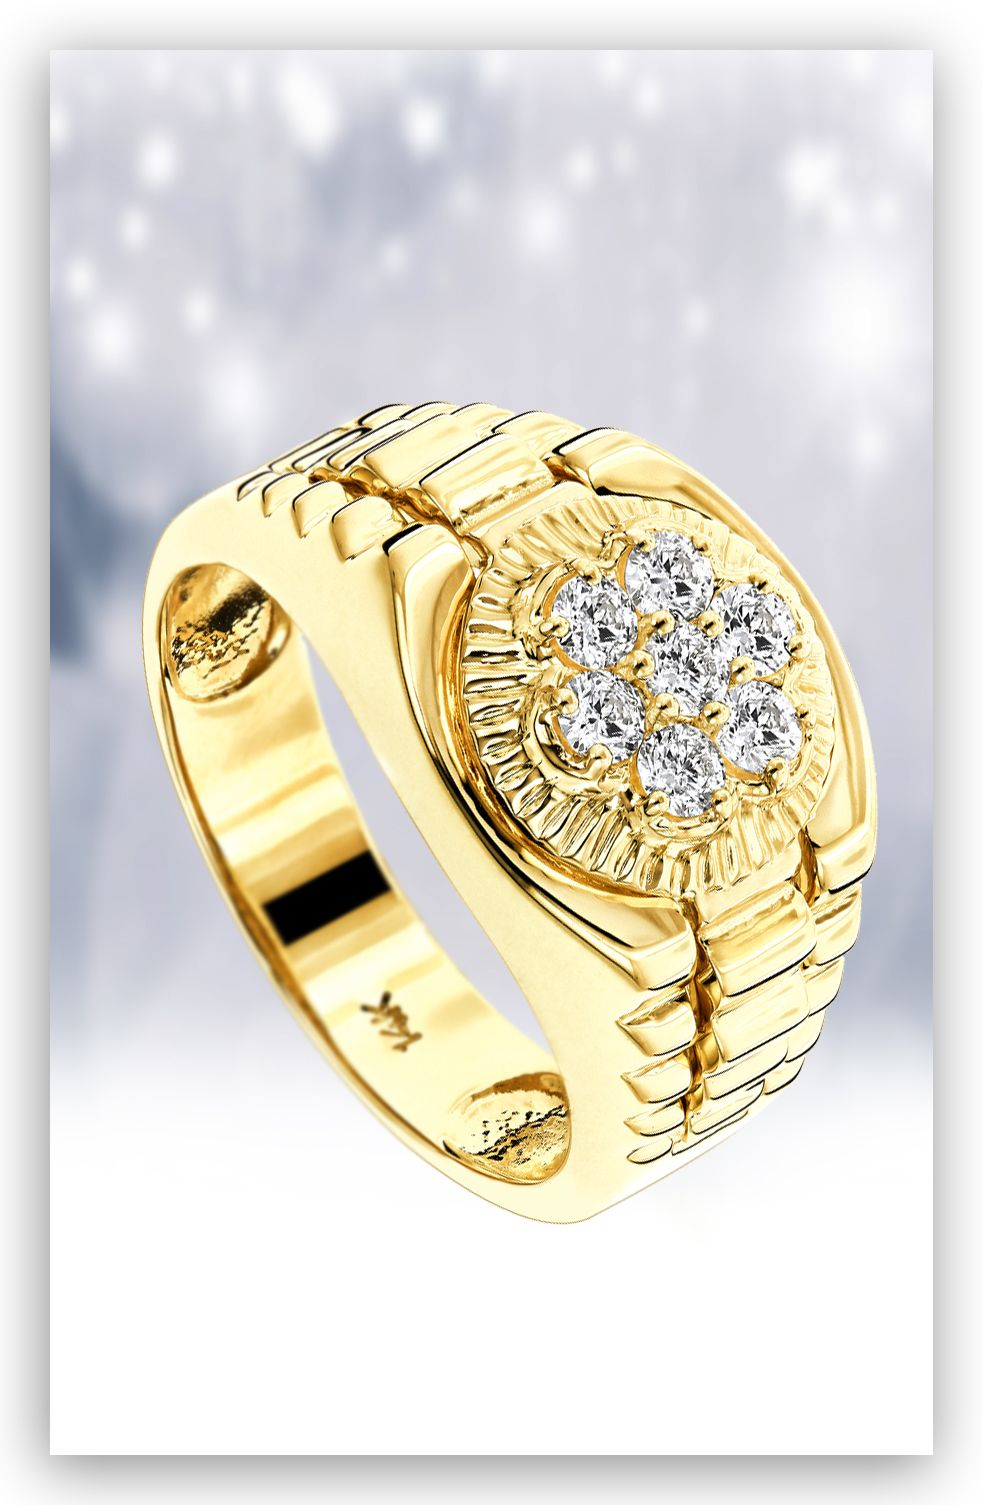 This 14K Gold Mens Rolex Style Diamond Ring showcases 0.45